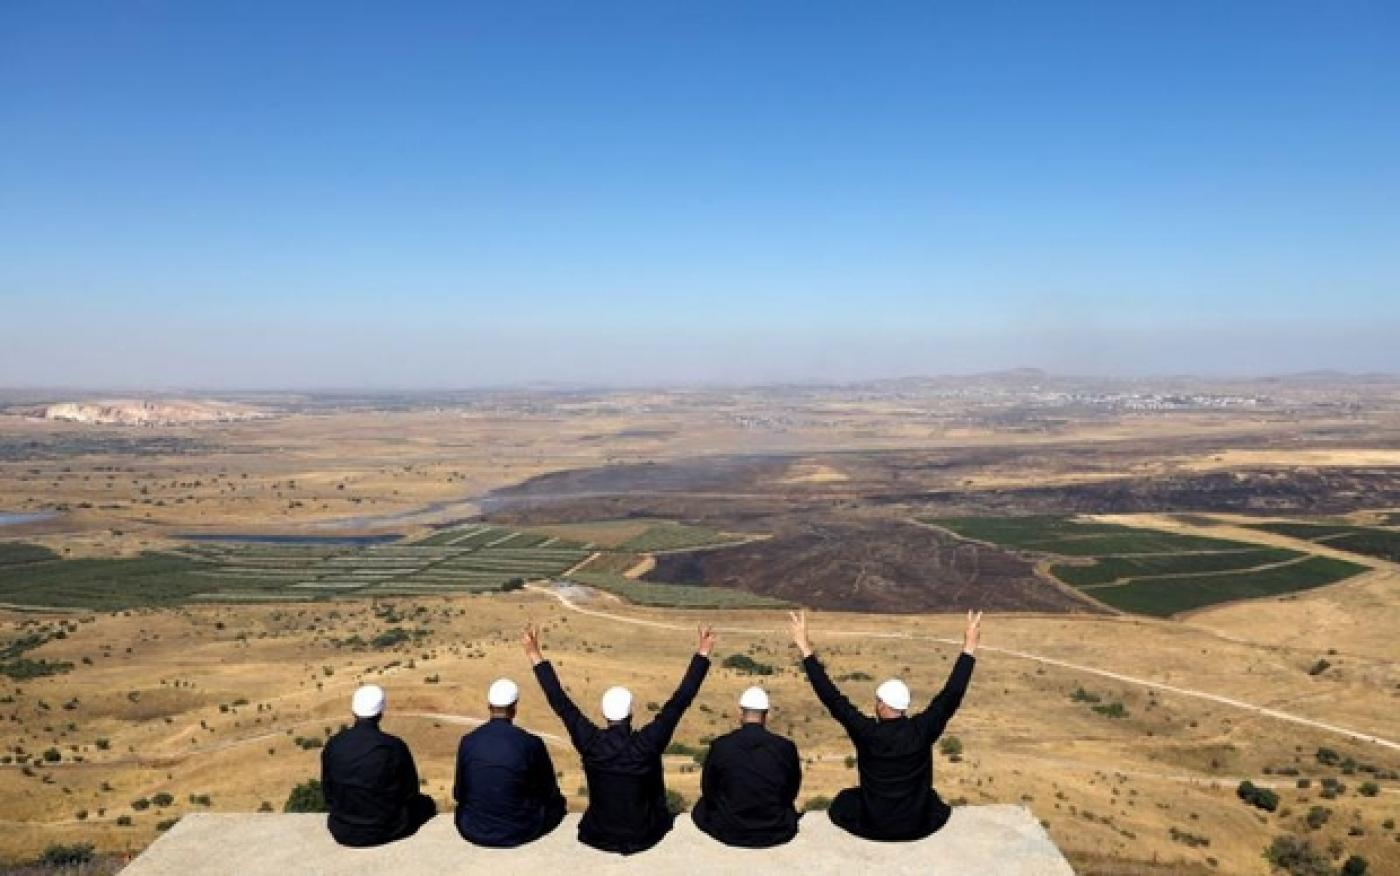 Time for the USA to 'recognize Israel's sovereignty over the Golan Heights'